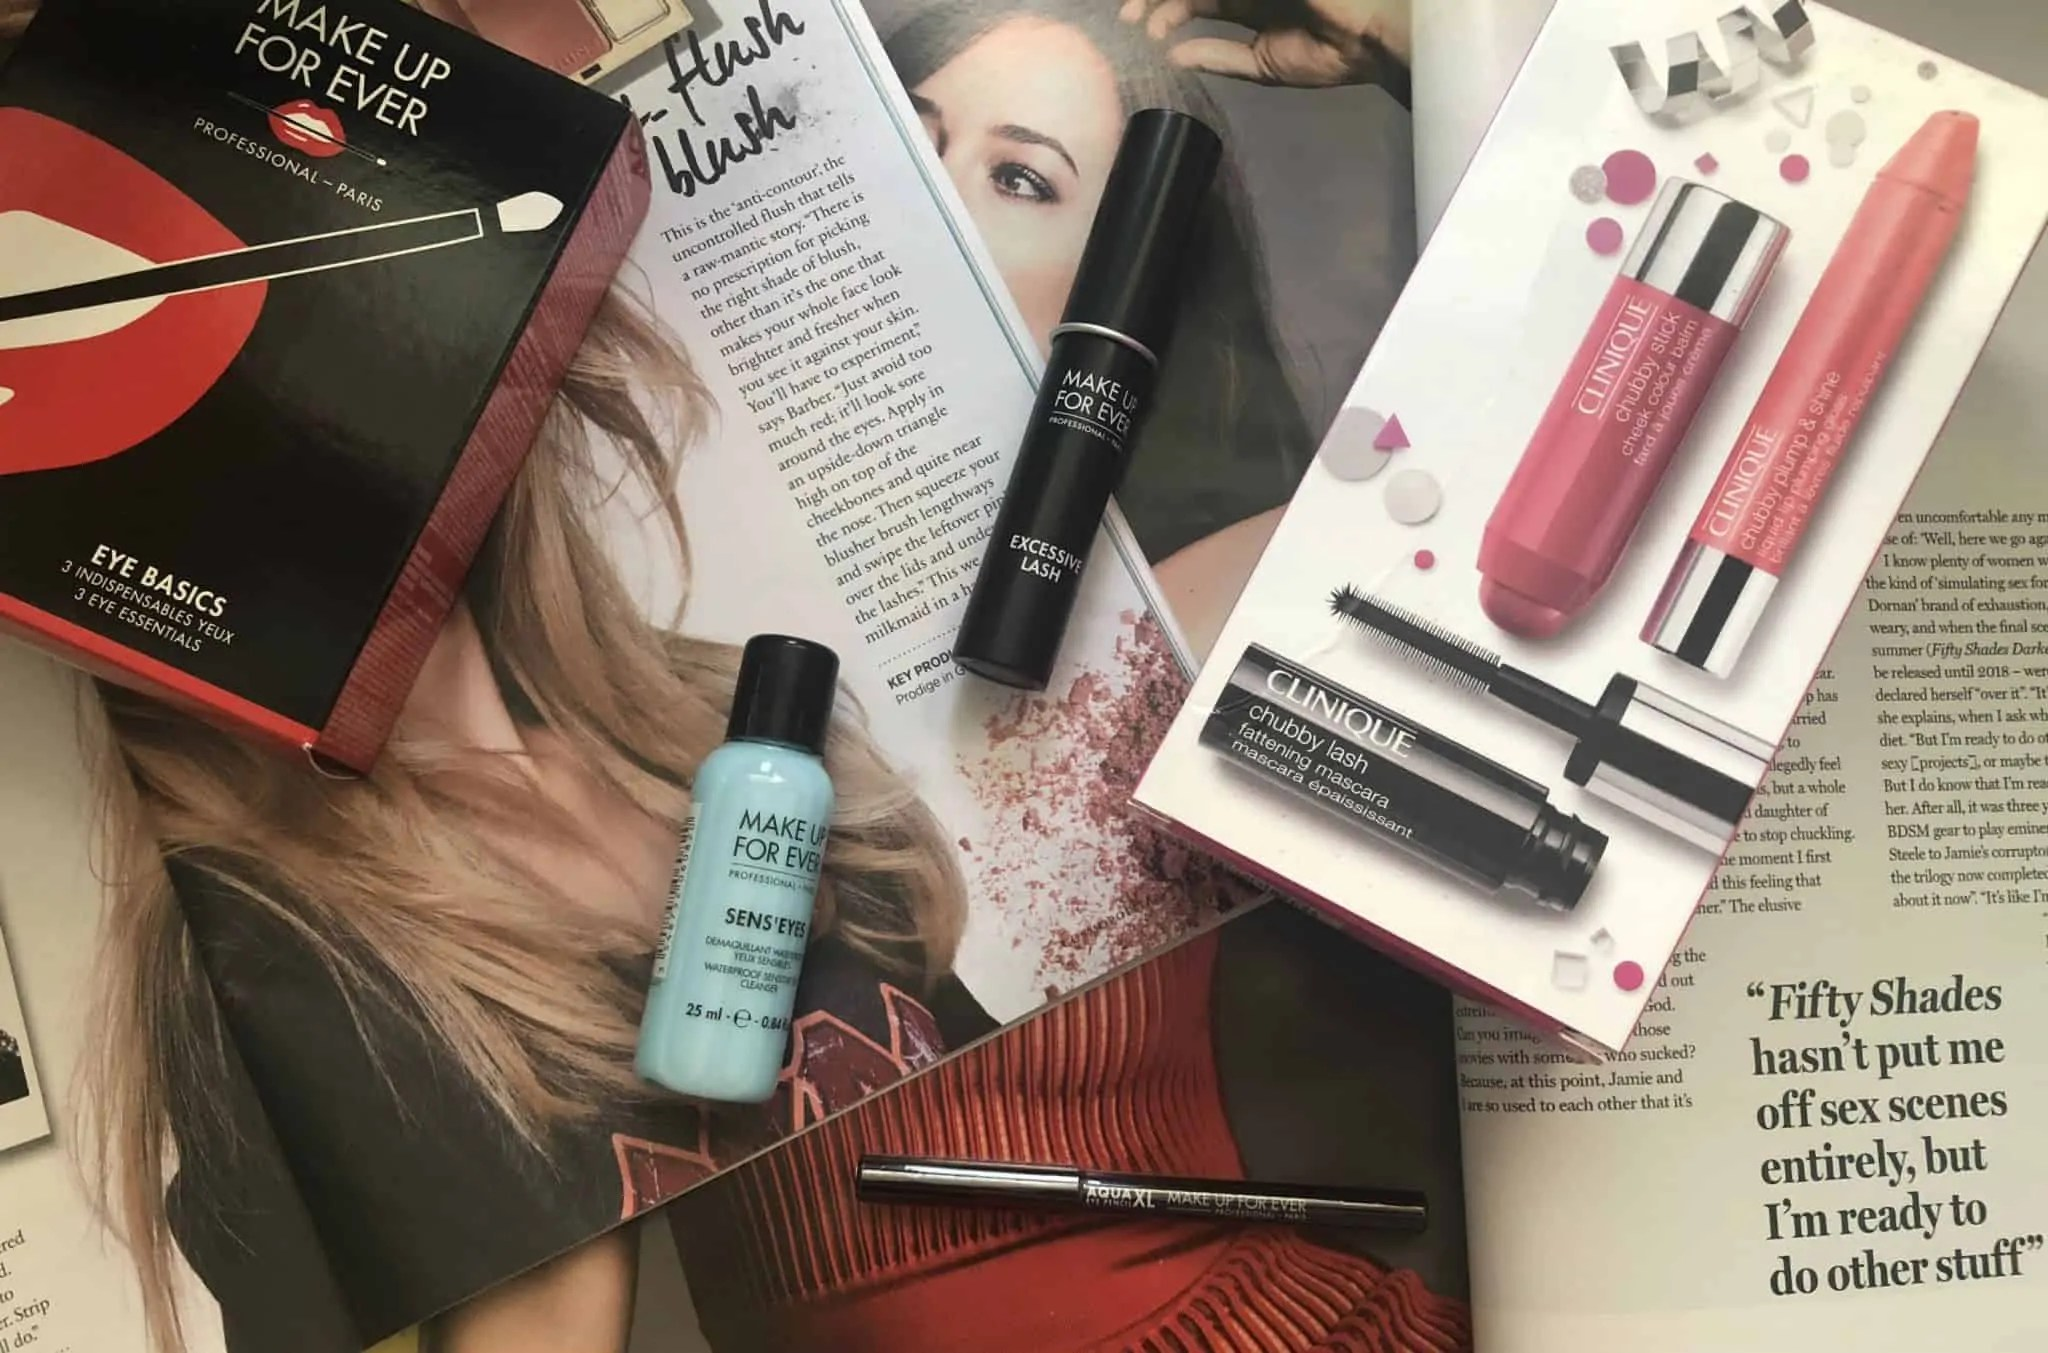 Win a fabulous Makeup Forever and Clinique makeup set